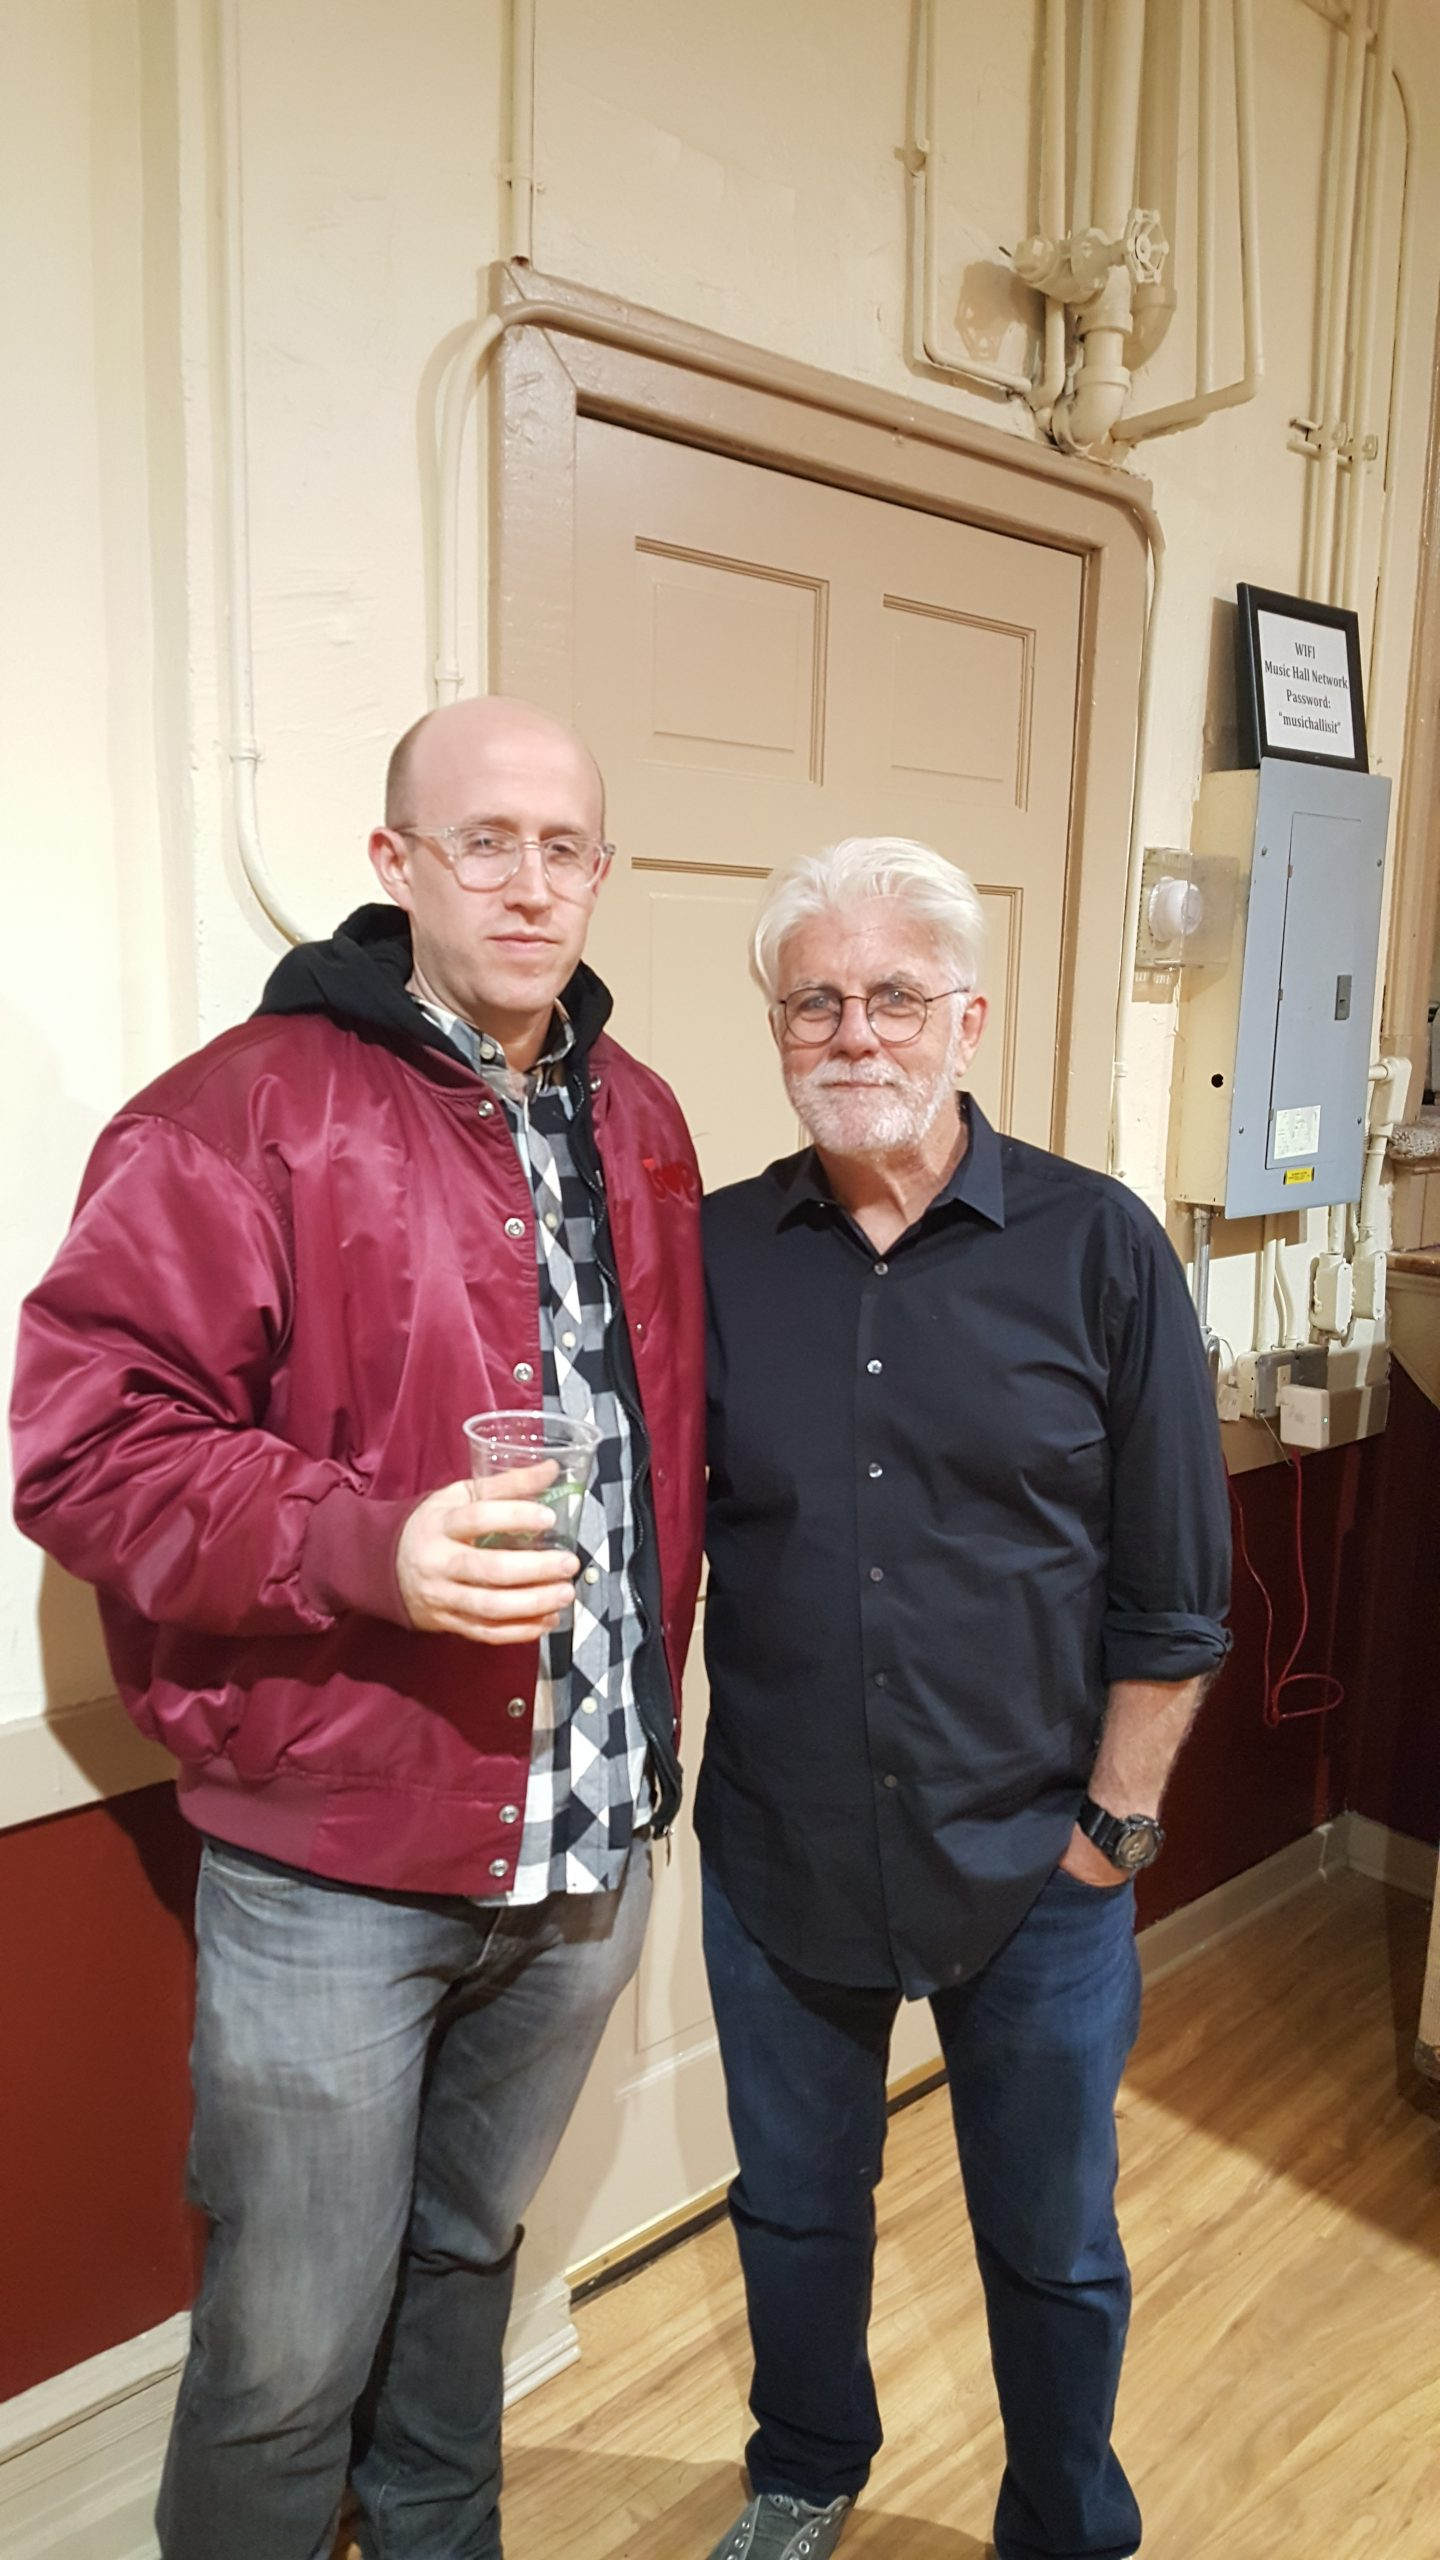 DJ Herbert Holler backstage at Tarrytown Music Hall with Michael McDonald